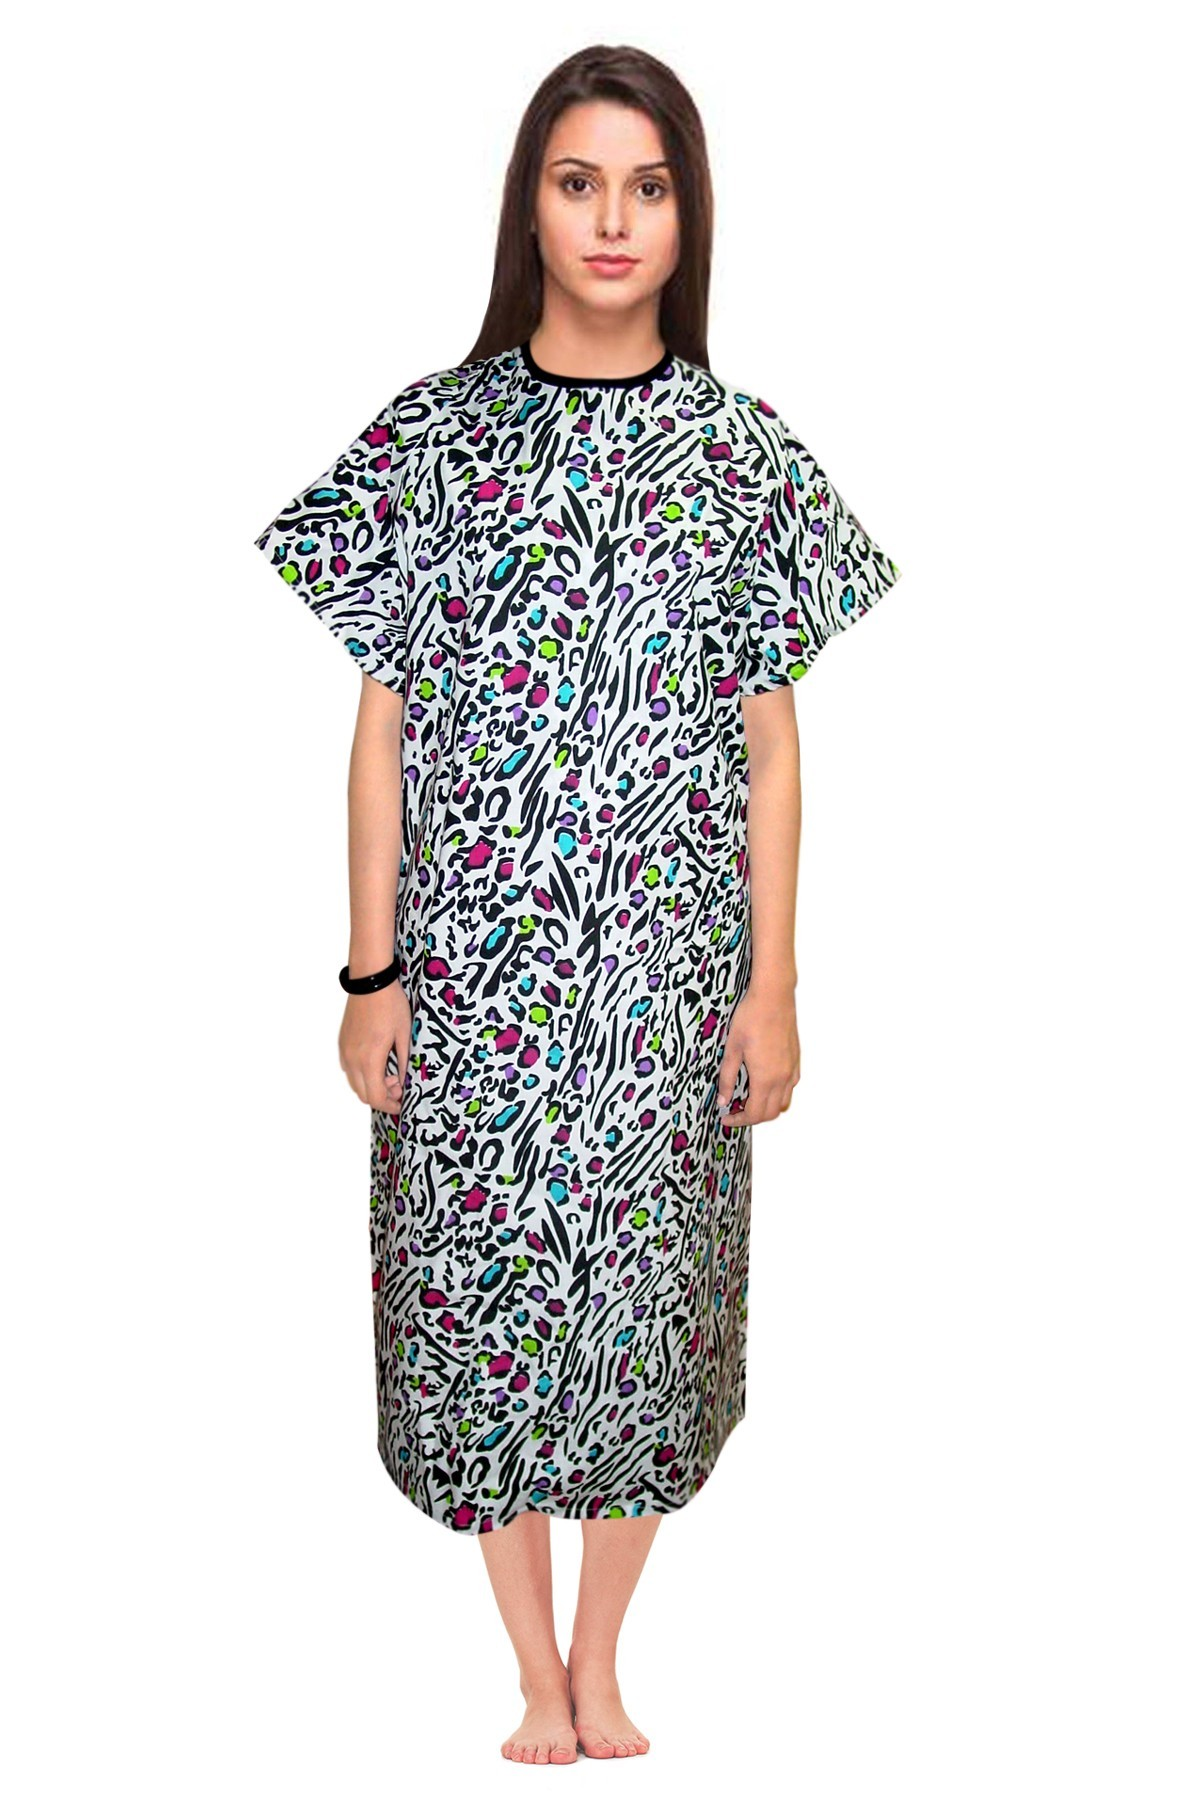 Patient gown half sleeve printed back open, tie-able  from two points Leopard print Chest 54 Inches Length 45 inches $6.25 and Chest 80 inches Length 49 inches $9.25